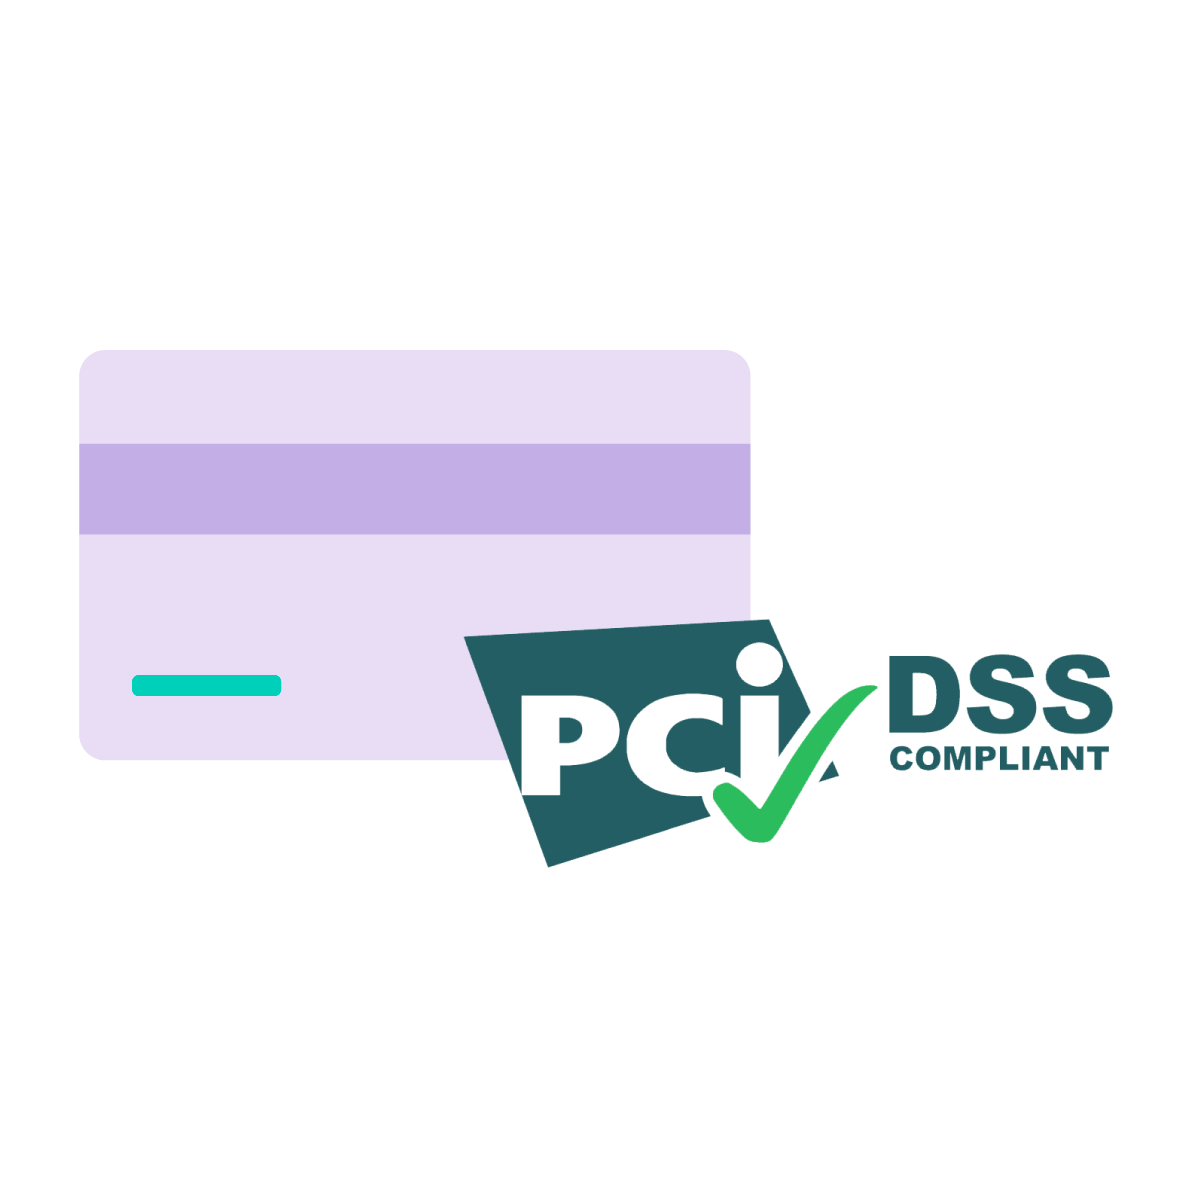 Icon of credit card and PCI-DSS Compliant logo